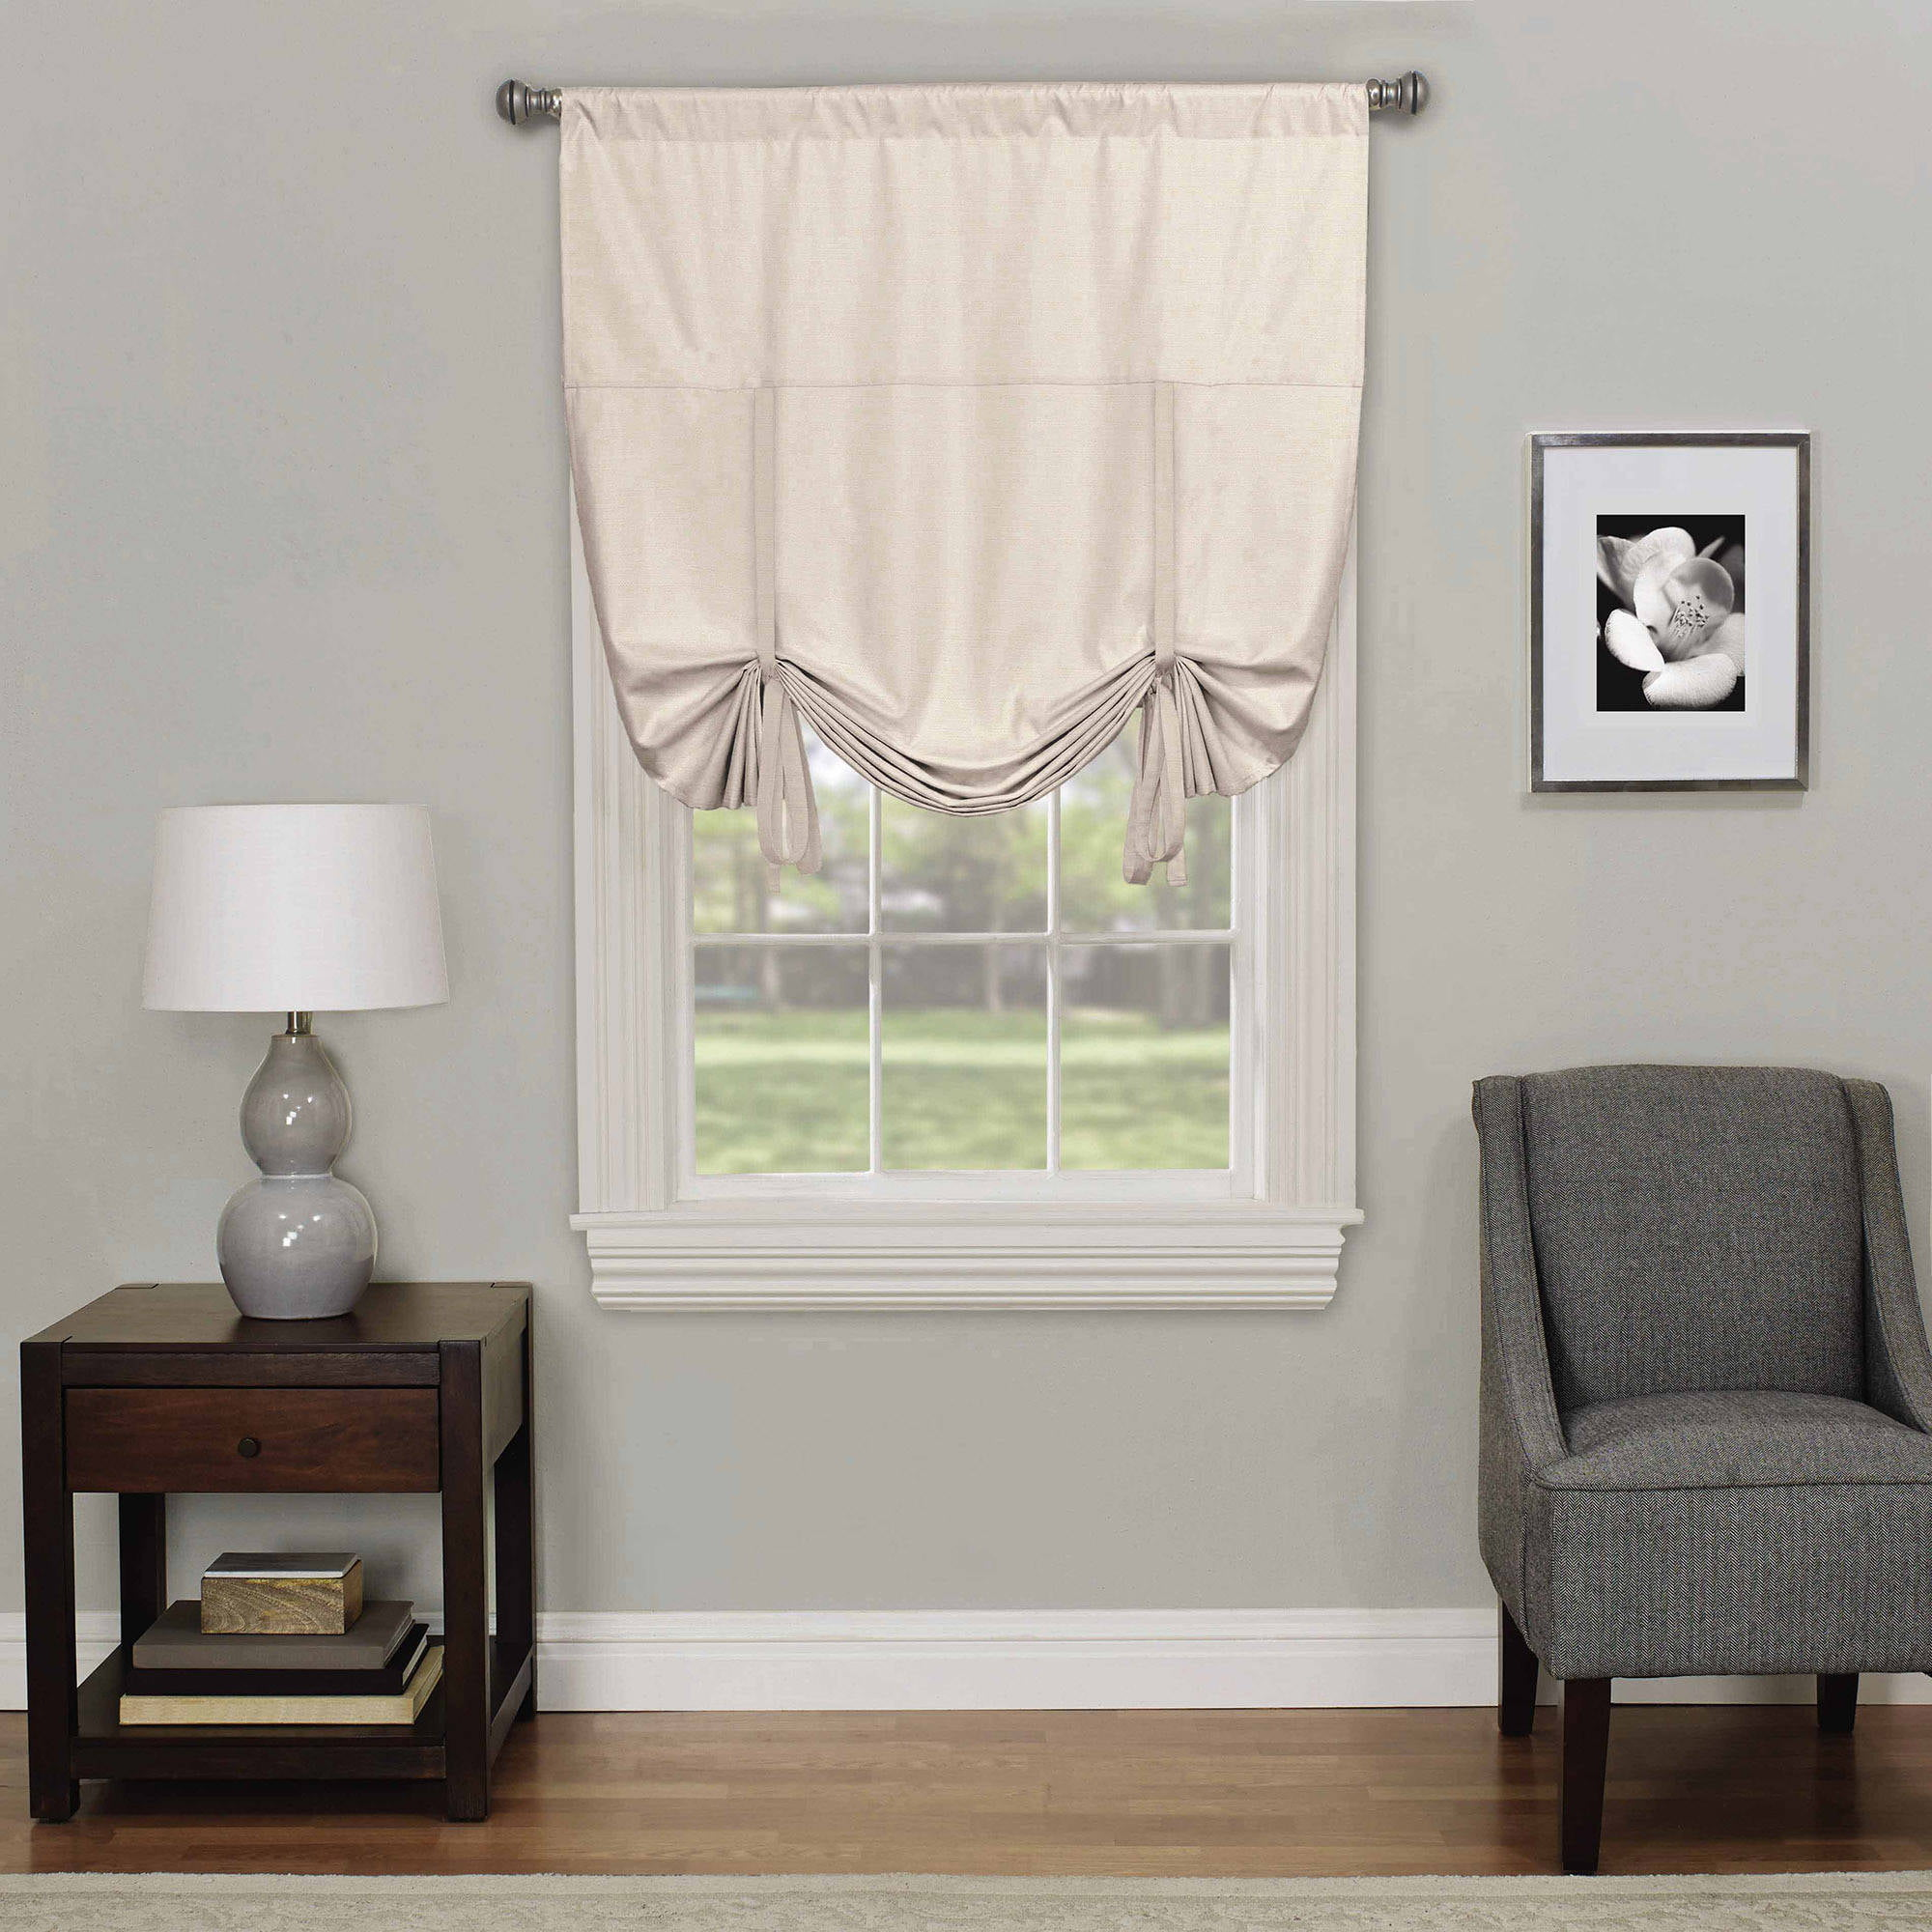 Cheap Roman Shades Clearance - Eclipse kendall blackout window tie up shade